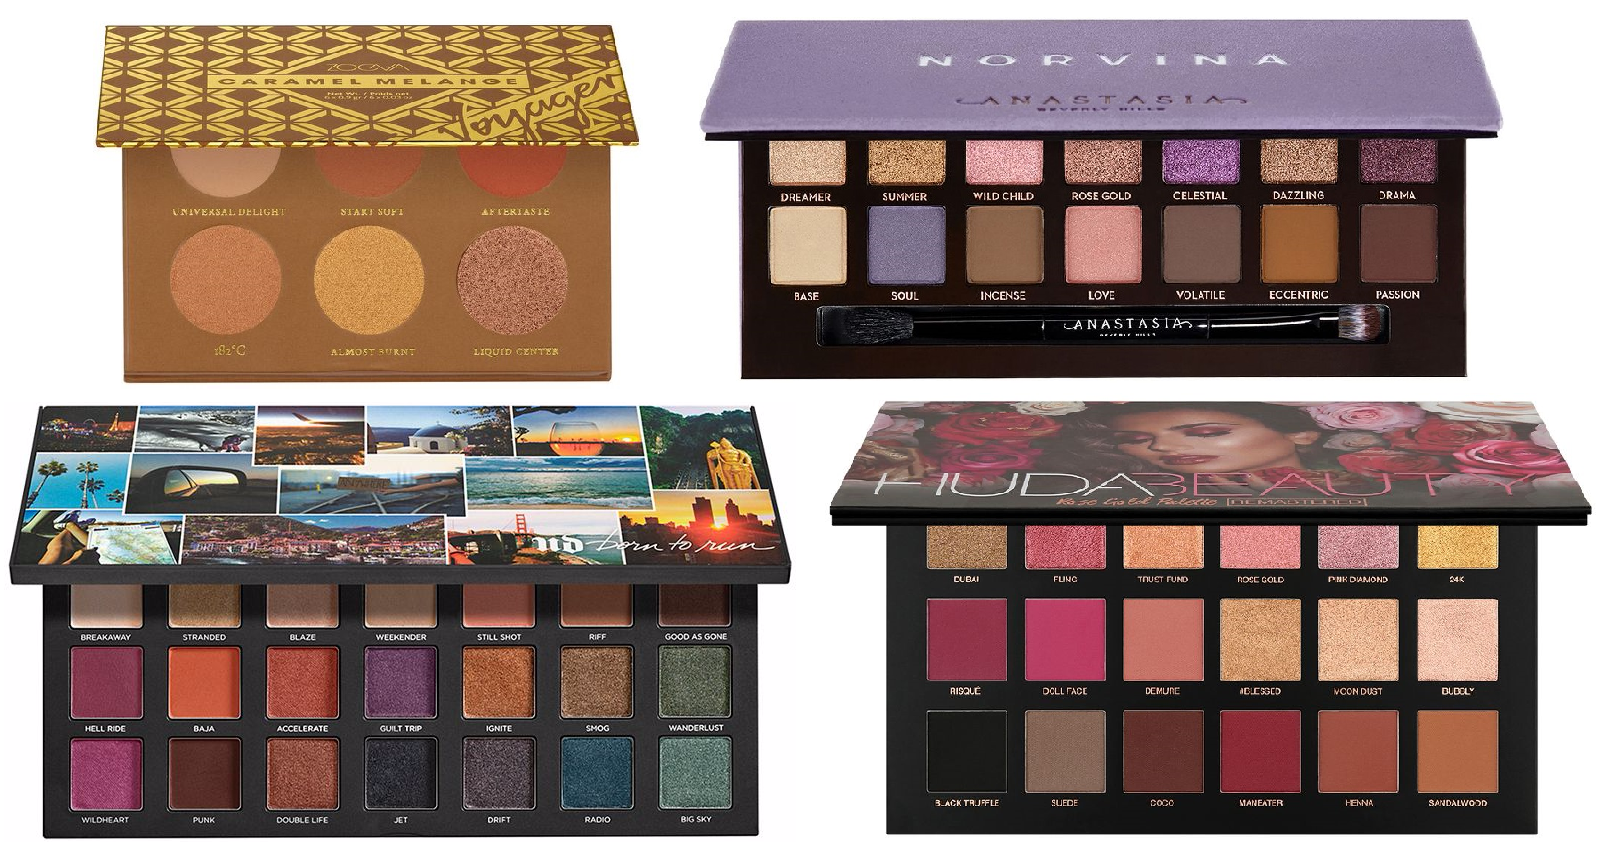 10 Best Eyeshadow Palettes Eye Makeup Palettes For 2020